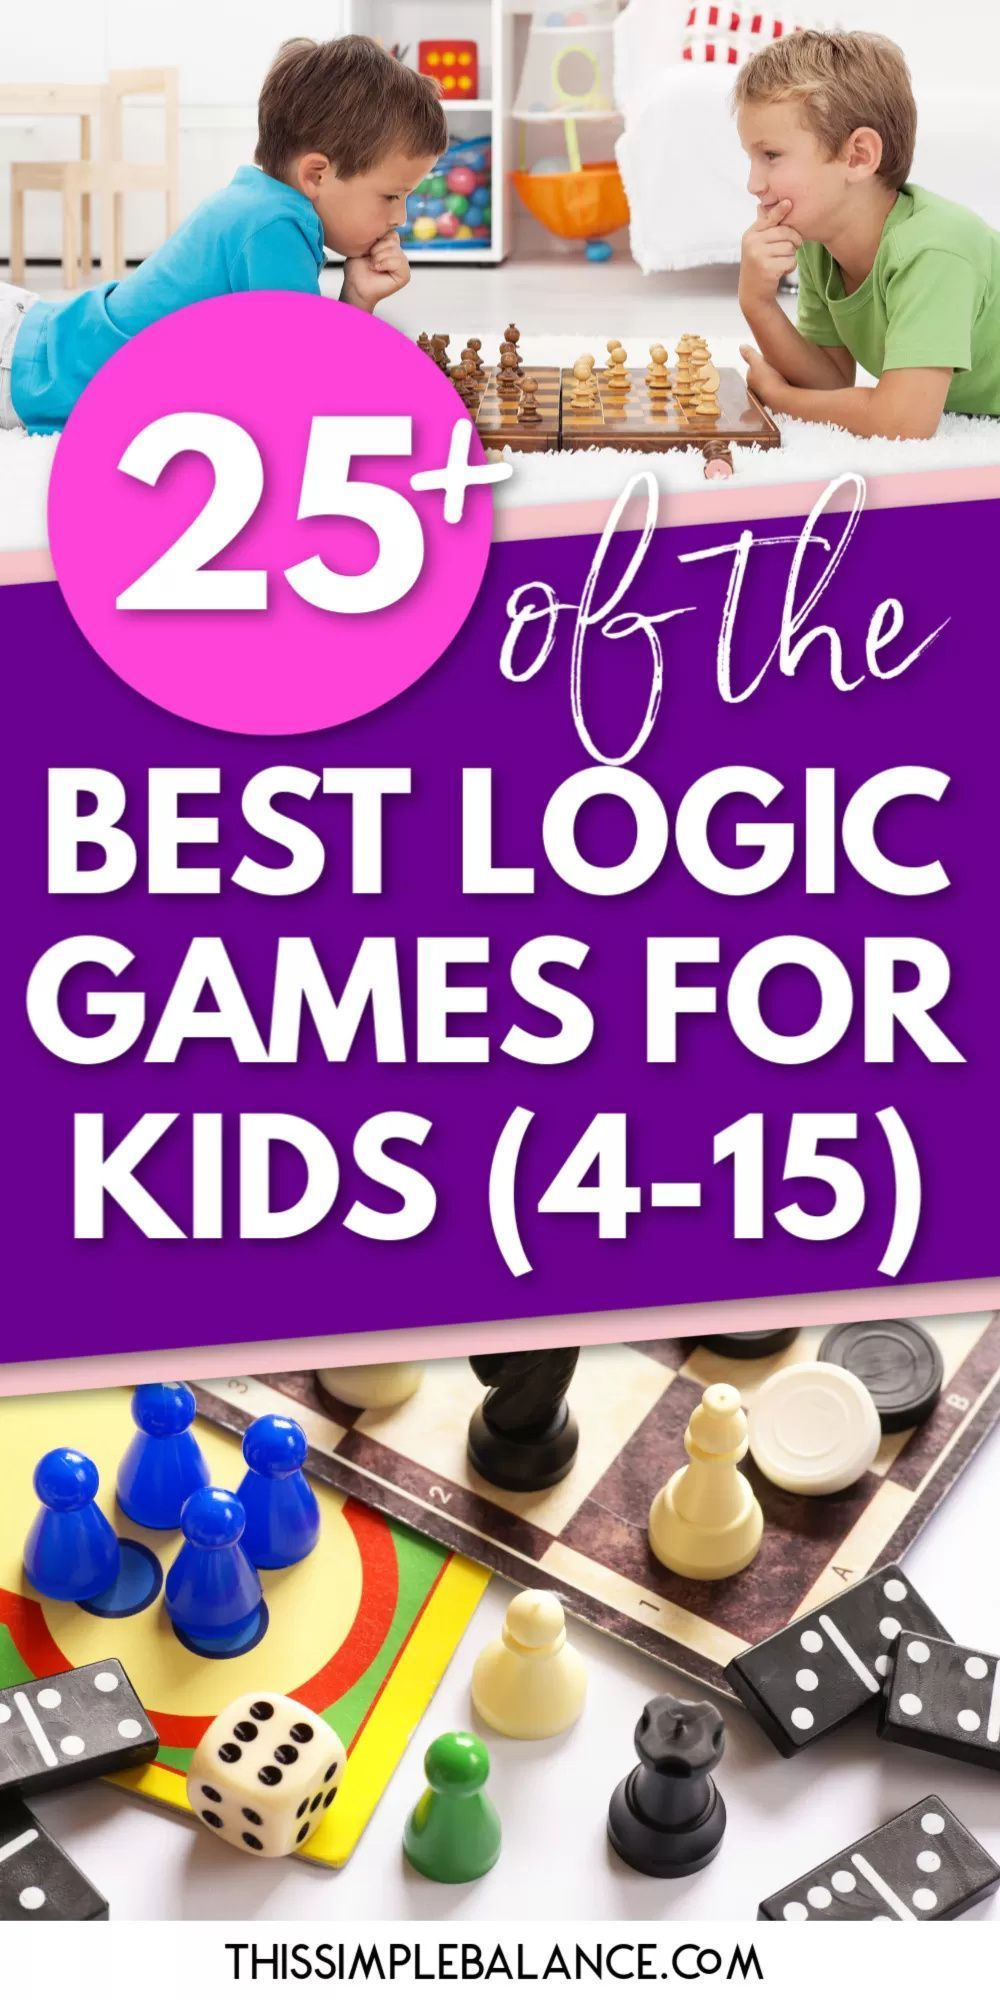 25+ Best Logic Board Games for Kids of All Ages #logicboard 25+ Best Logic Board Games for Kids: help your kids develop perseverance, critical thinking and reasoning skills! #homeschool #logicboard